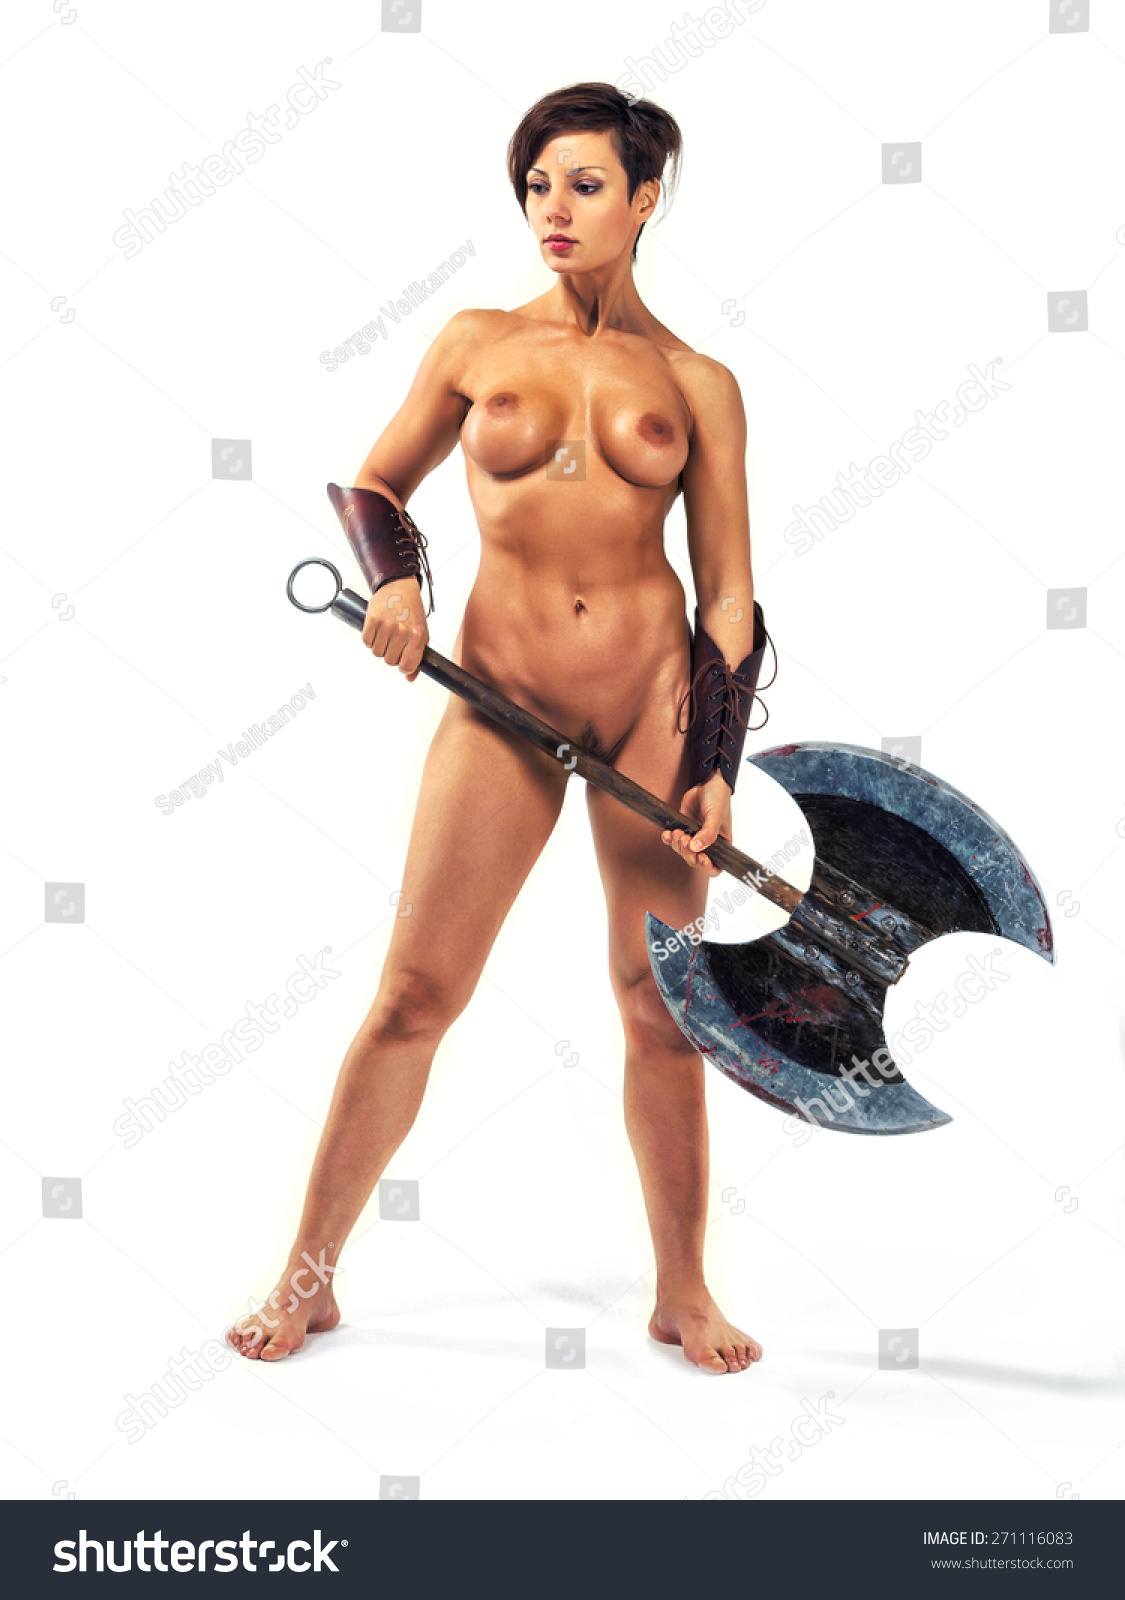 Nude warrior women tumblr sexy tube